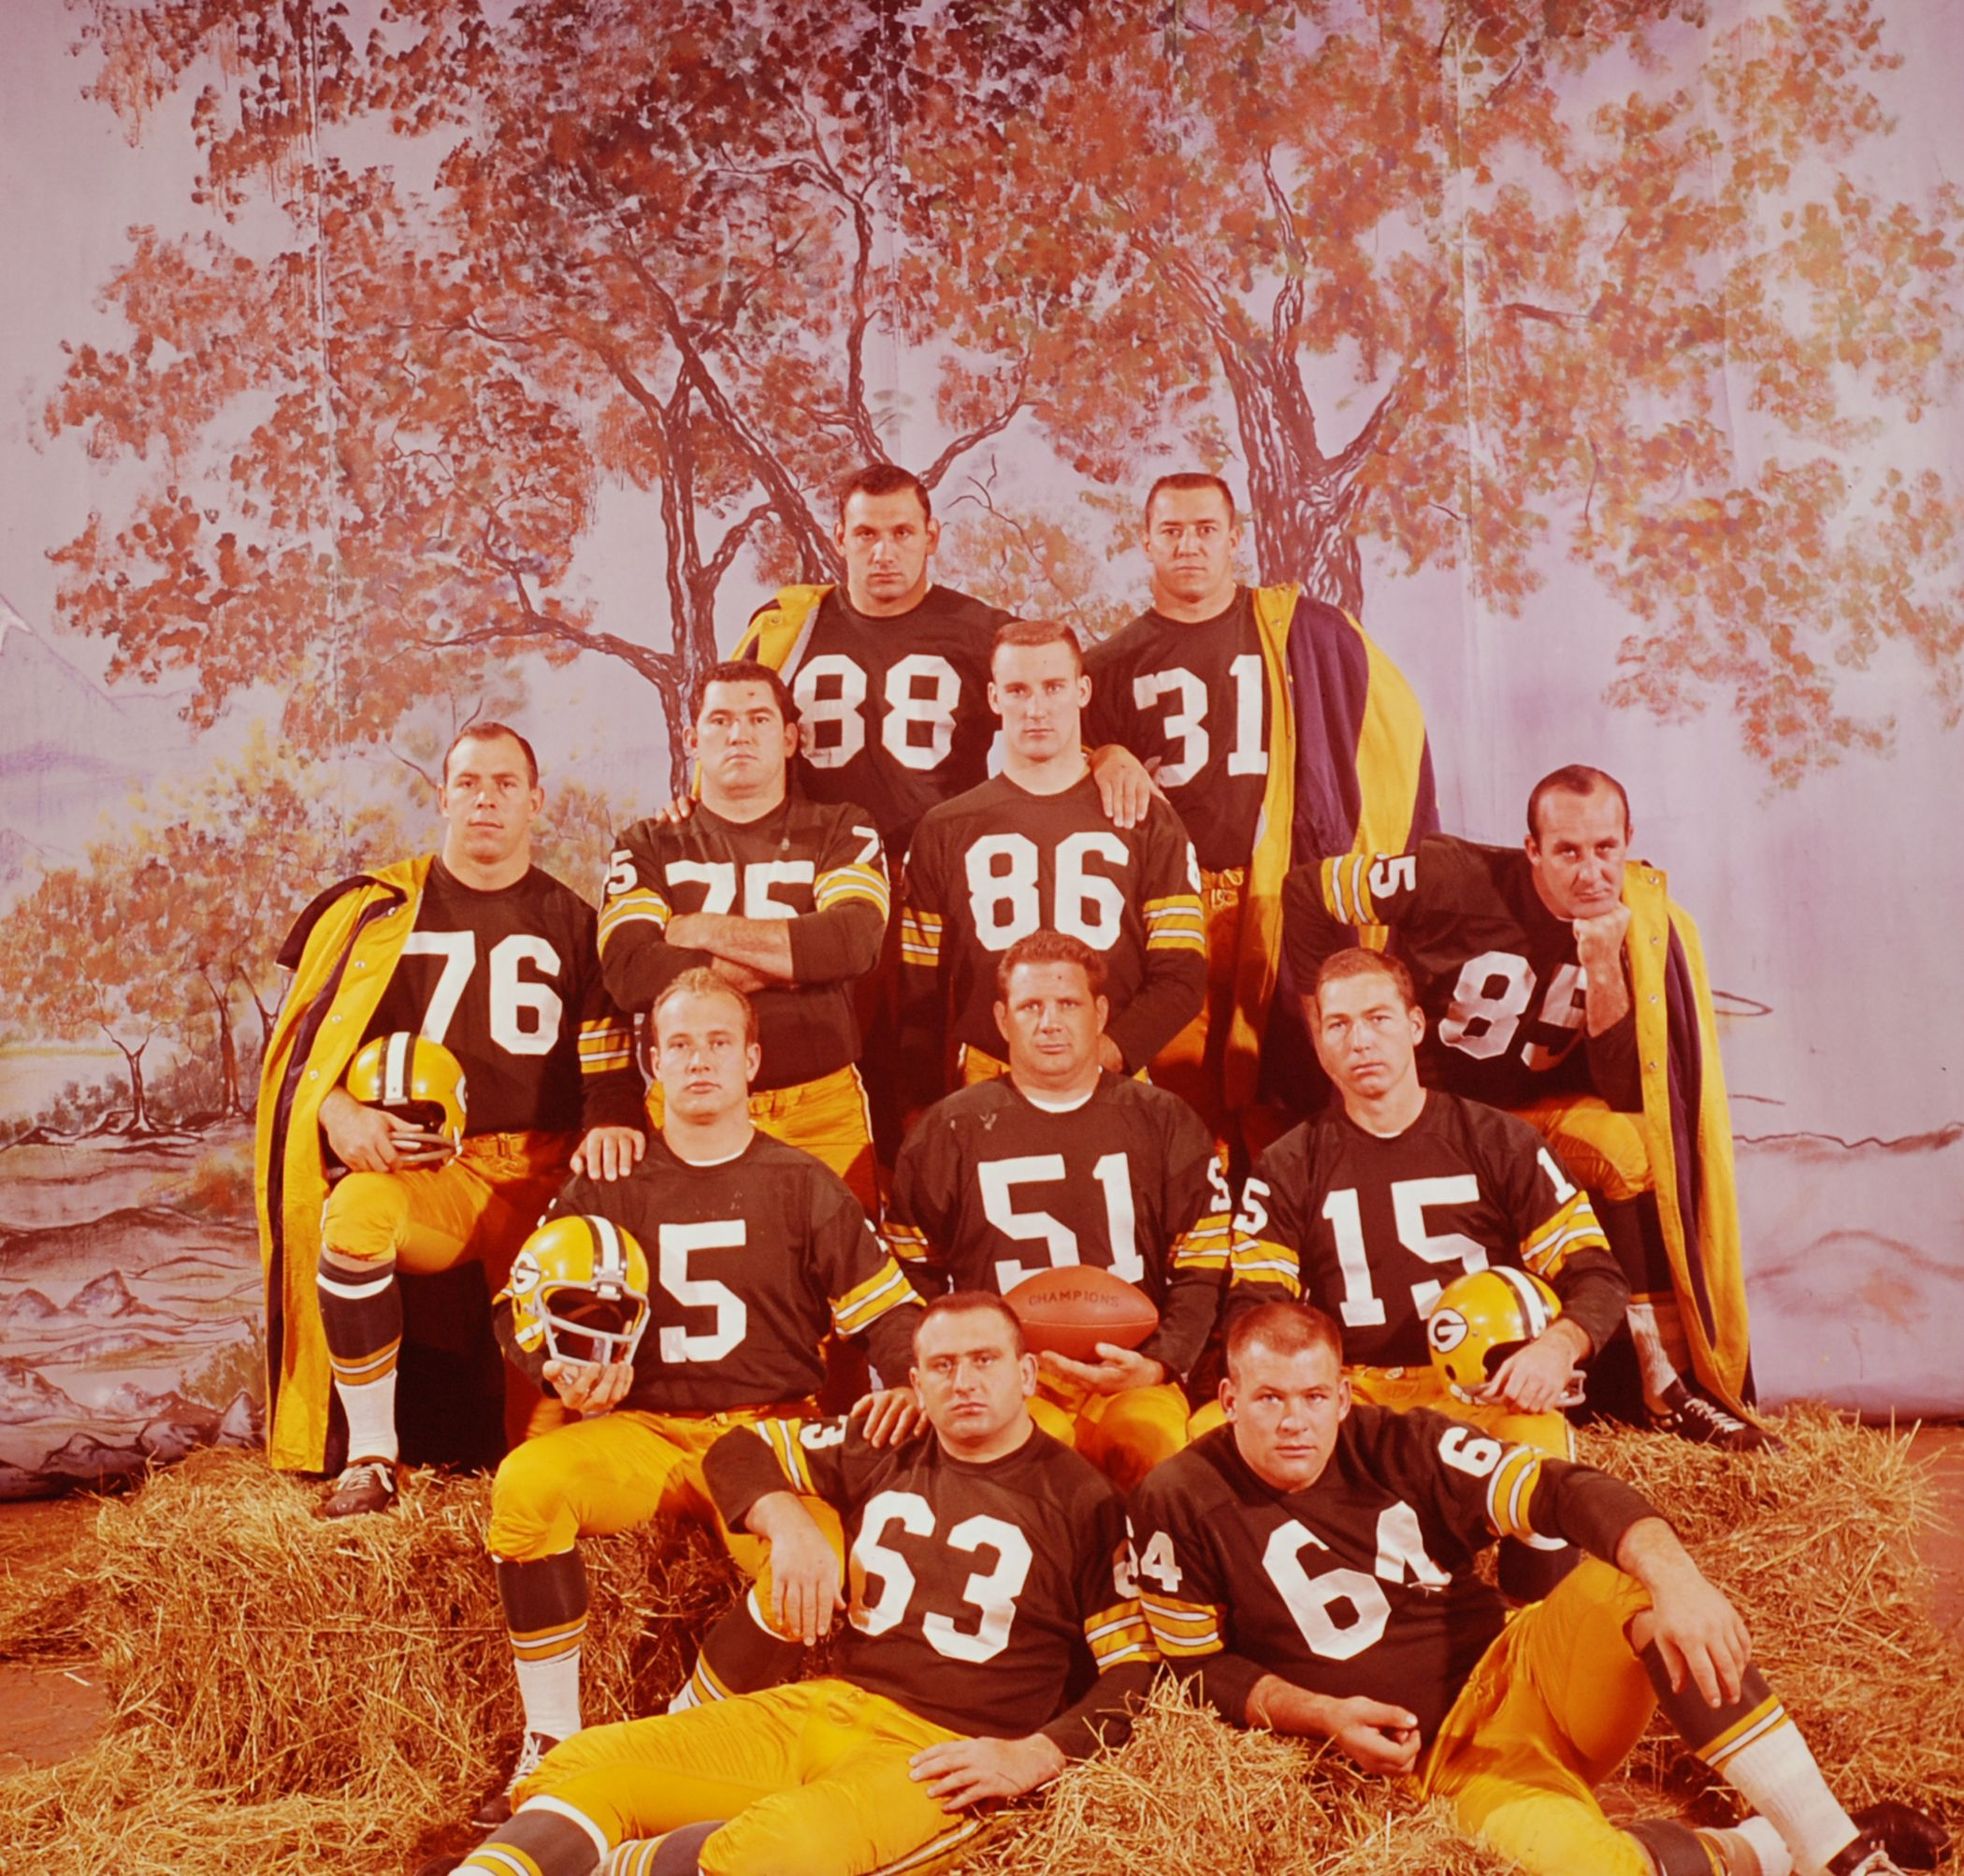 August 20 1920 The Nfl Is Born Pictured The 1962 Green Bay Packers By Life S Geo Green Bay Packers Vintage Green Bay Packers Fans Green Bay Packers History